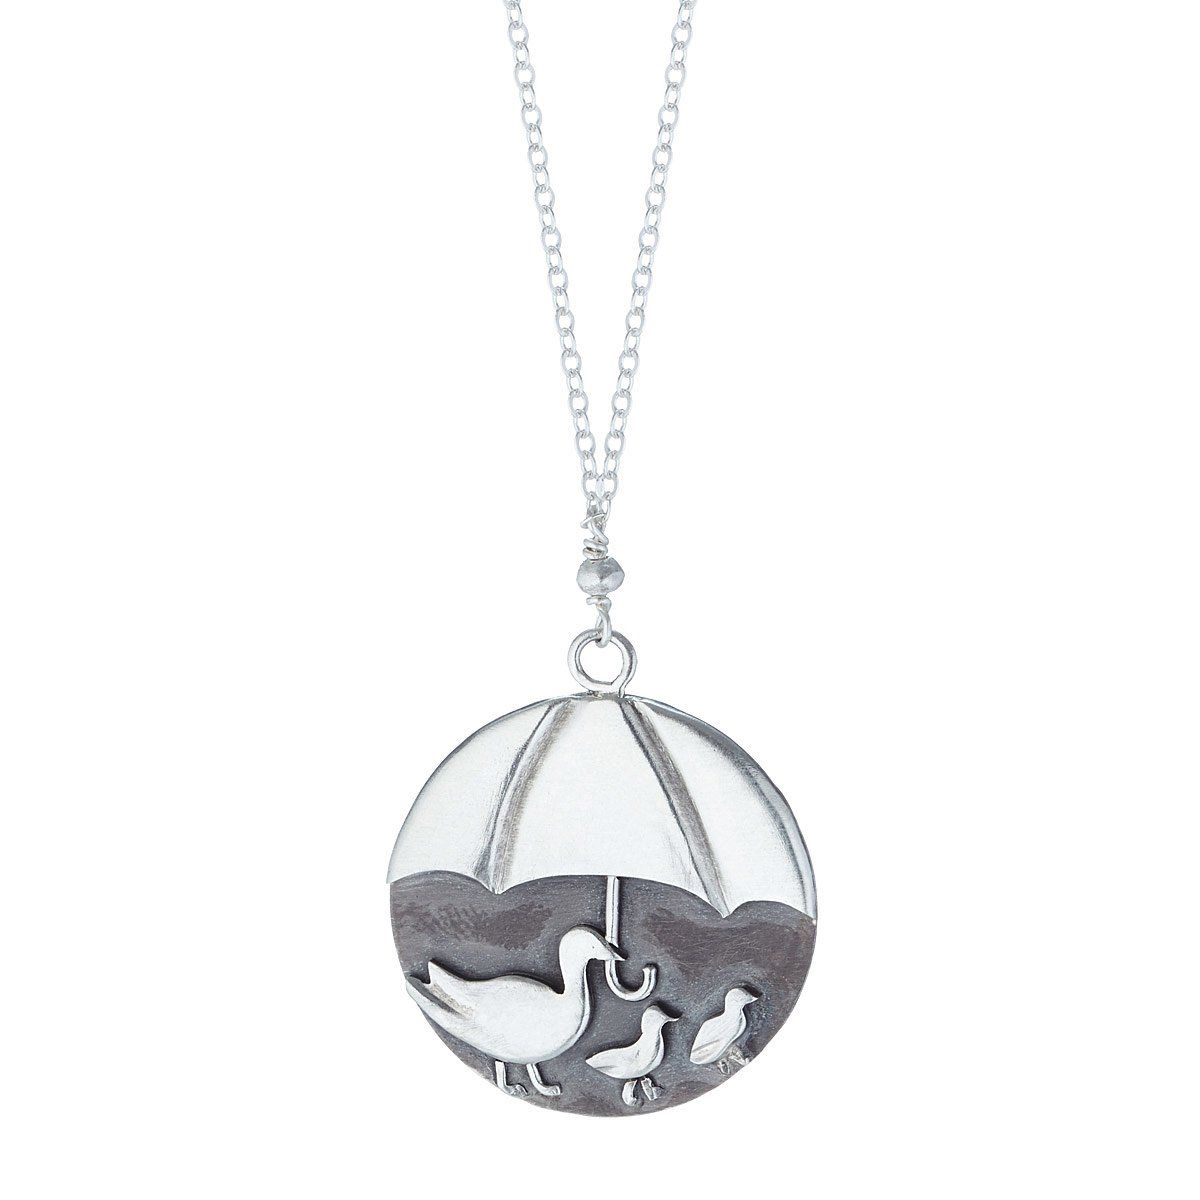 tag choice mama necklace frankie dex words loves image chain disc product motherhood of